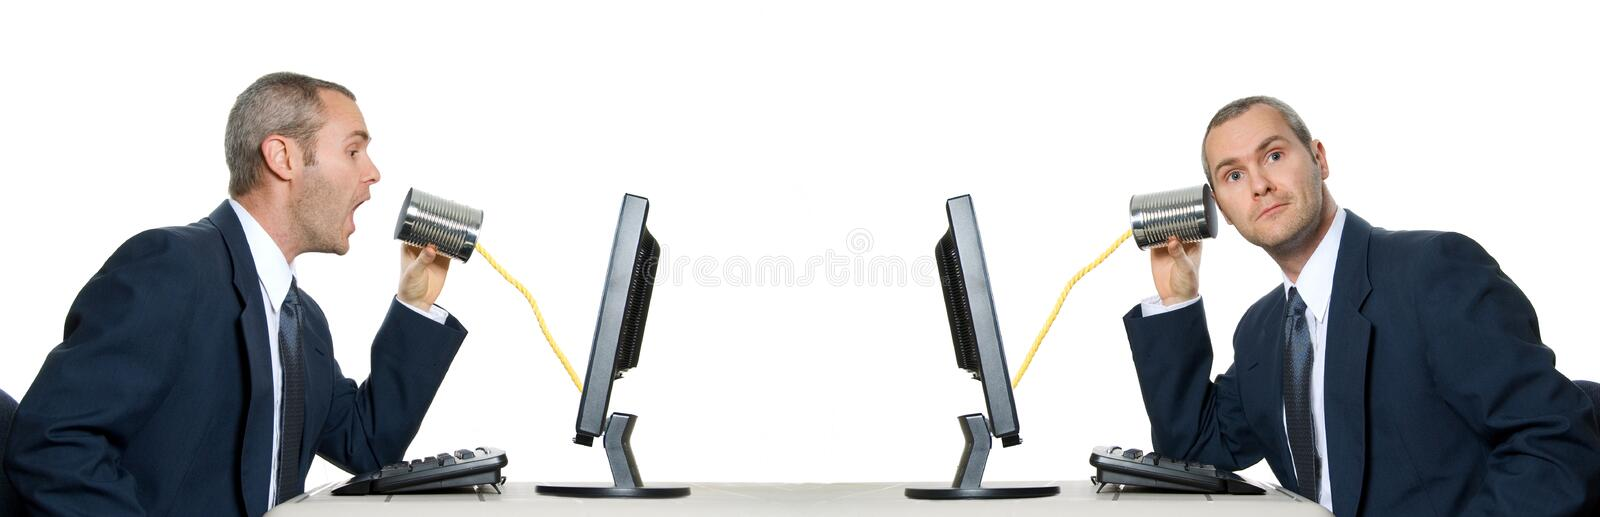 Download Communication stock image. Image of hear, double, monitor - 1523639